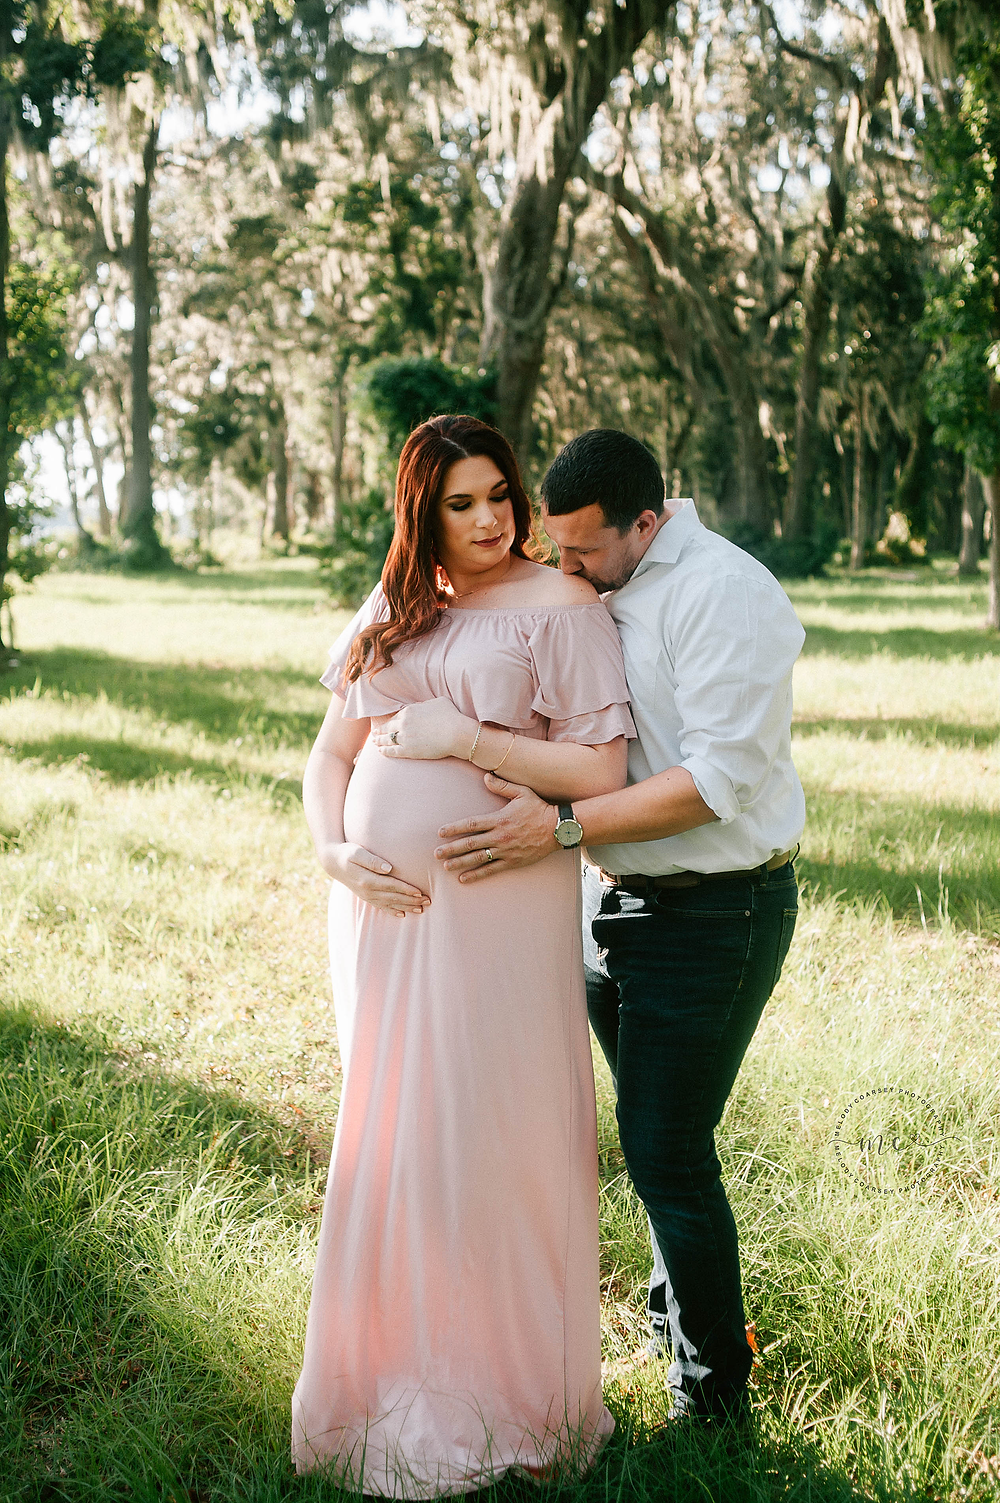 Best Jacksonville FL Maternity Photographers